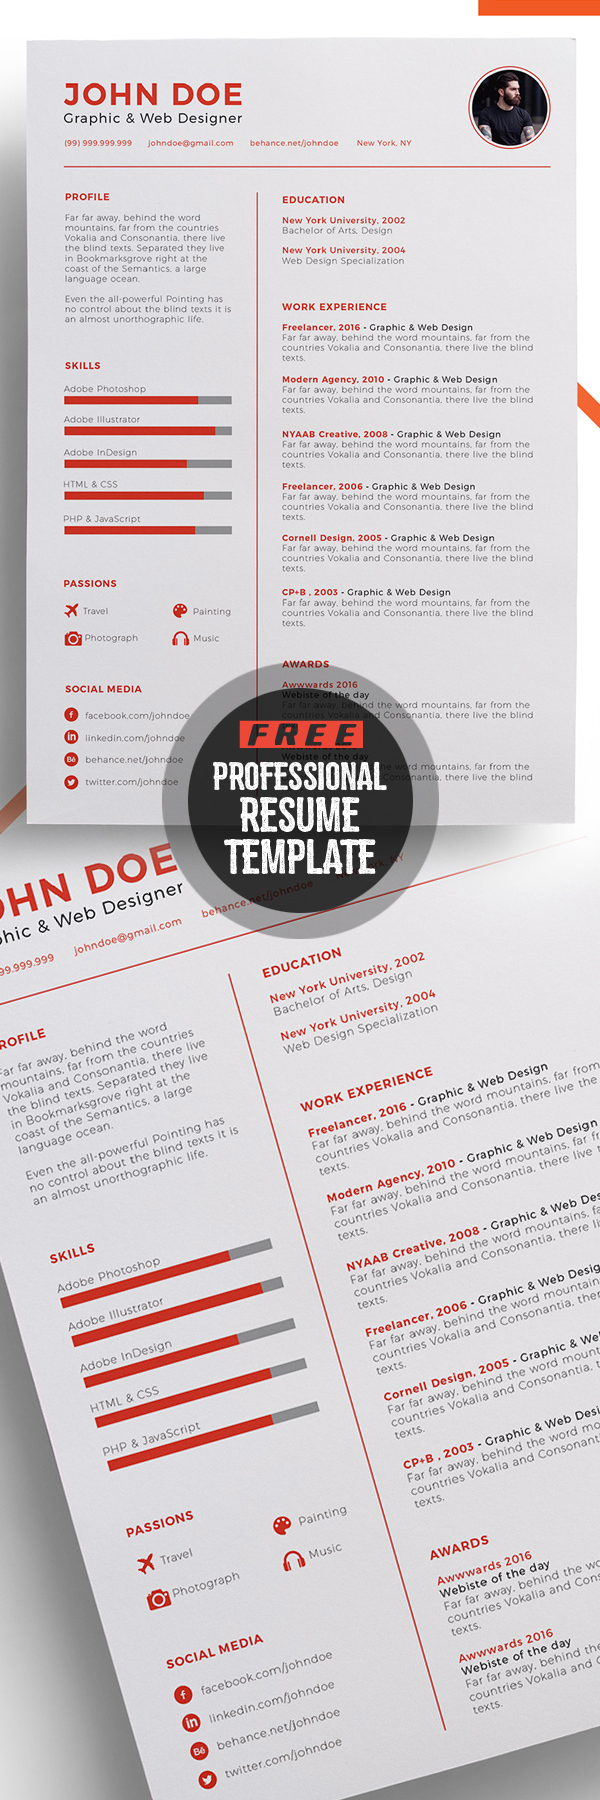 professional free resume template design - Creative Resume Templates Free Word